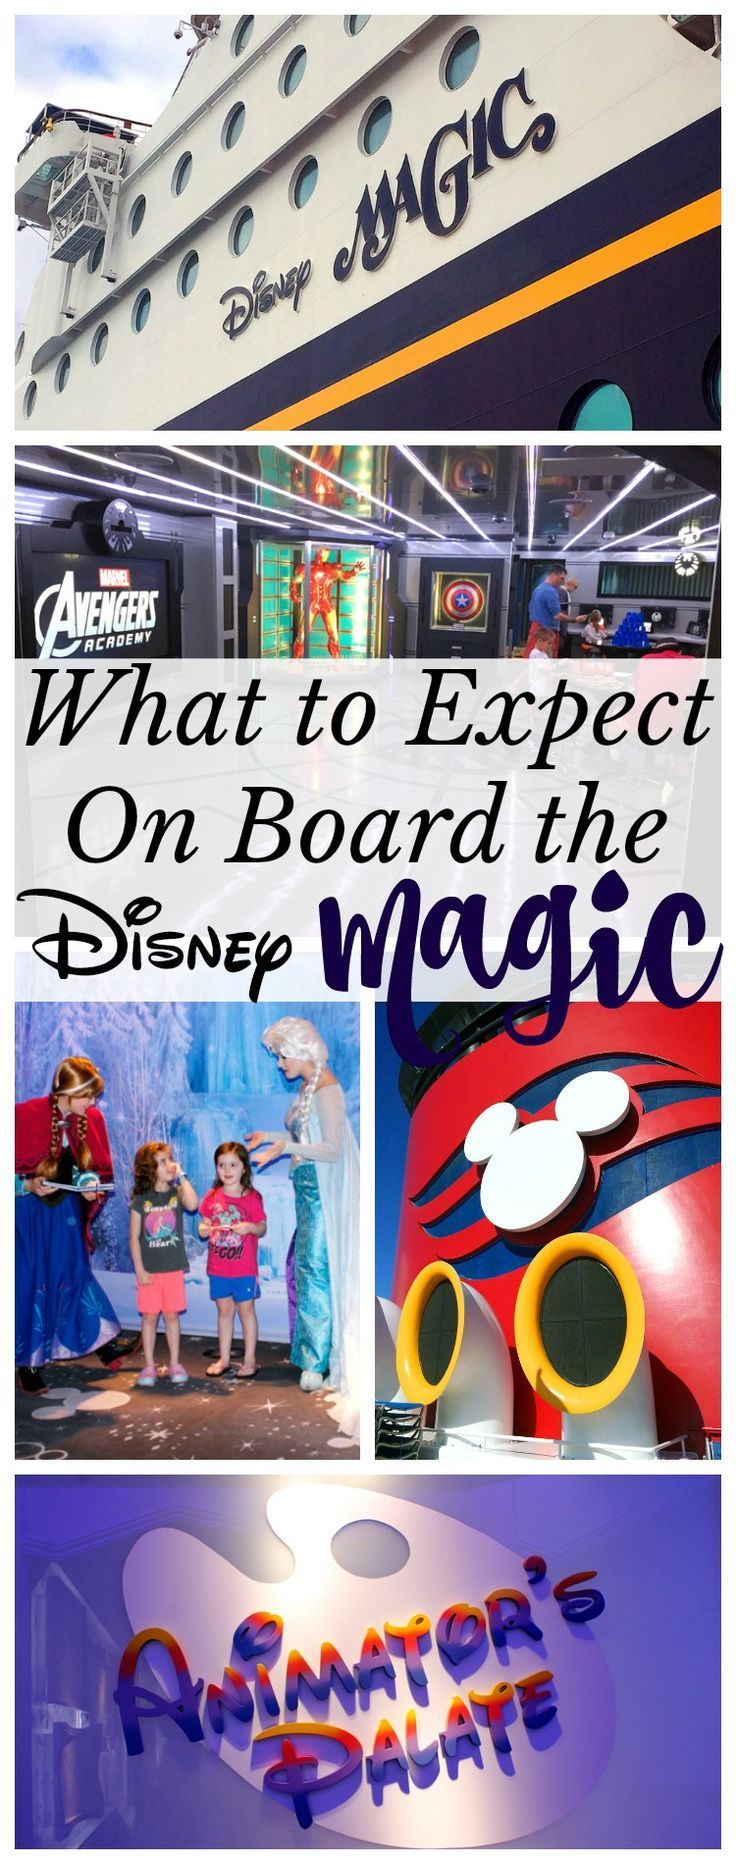 If you are planning a Disney Cruise Line vacation, there are many options to choose from! How do you know which itinerary is best? What about the ships? We sailed on the Disney Magic cruise ship and loved it. Read more about what you can expect when you s